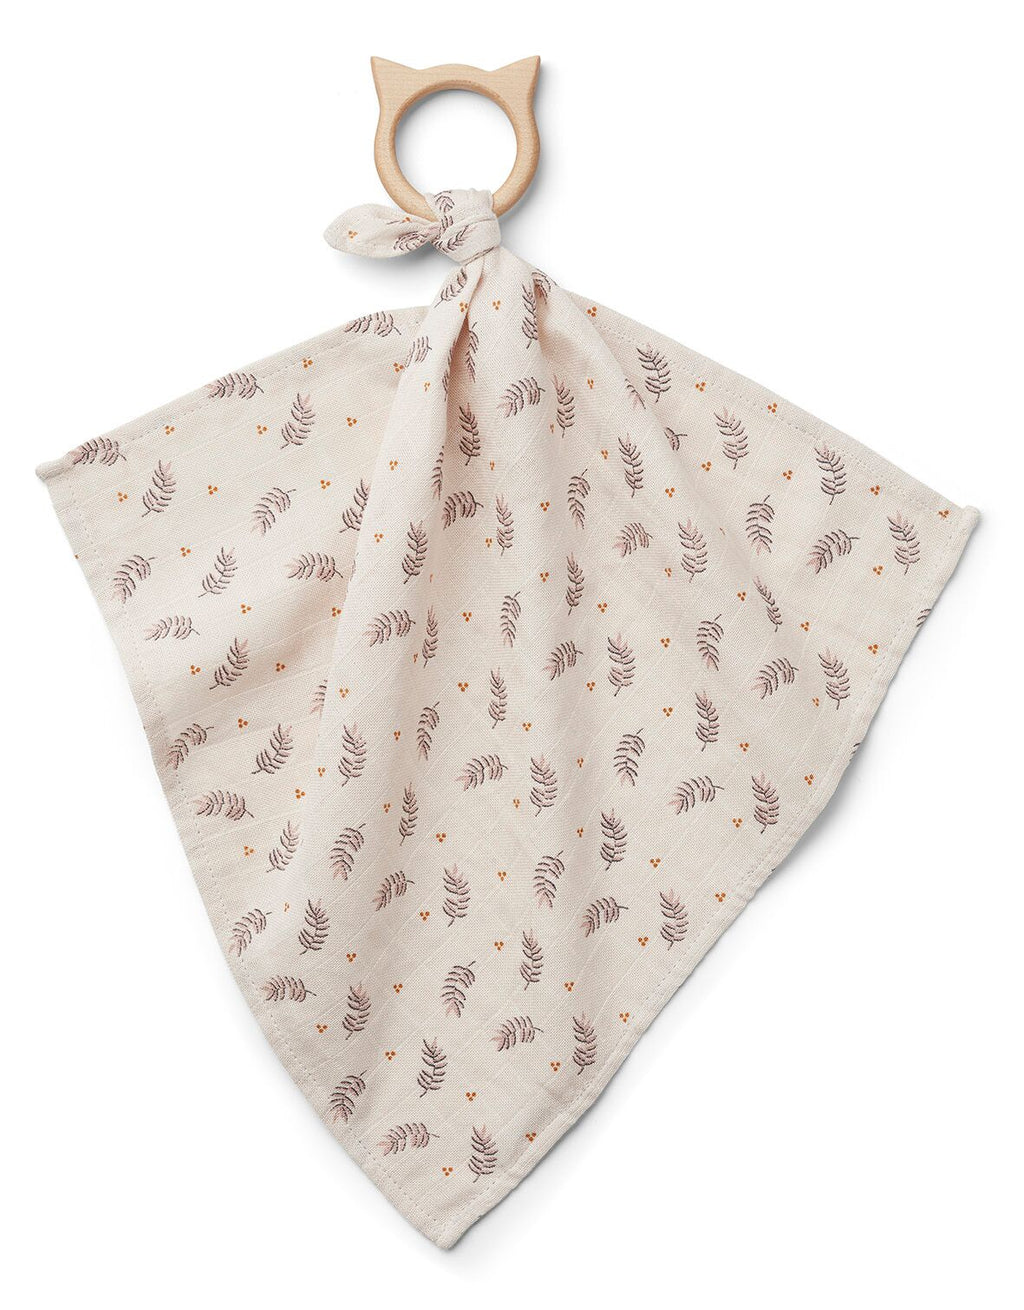 Dines Teether Cuddle Cloth - Fern/rose - jacksplot